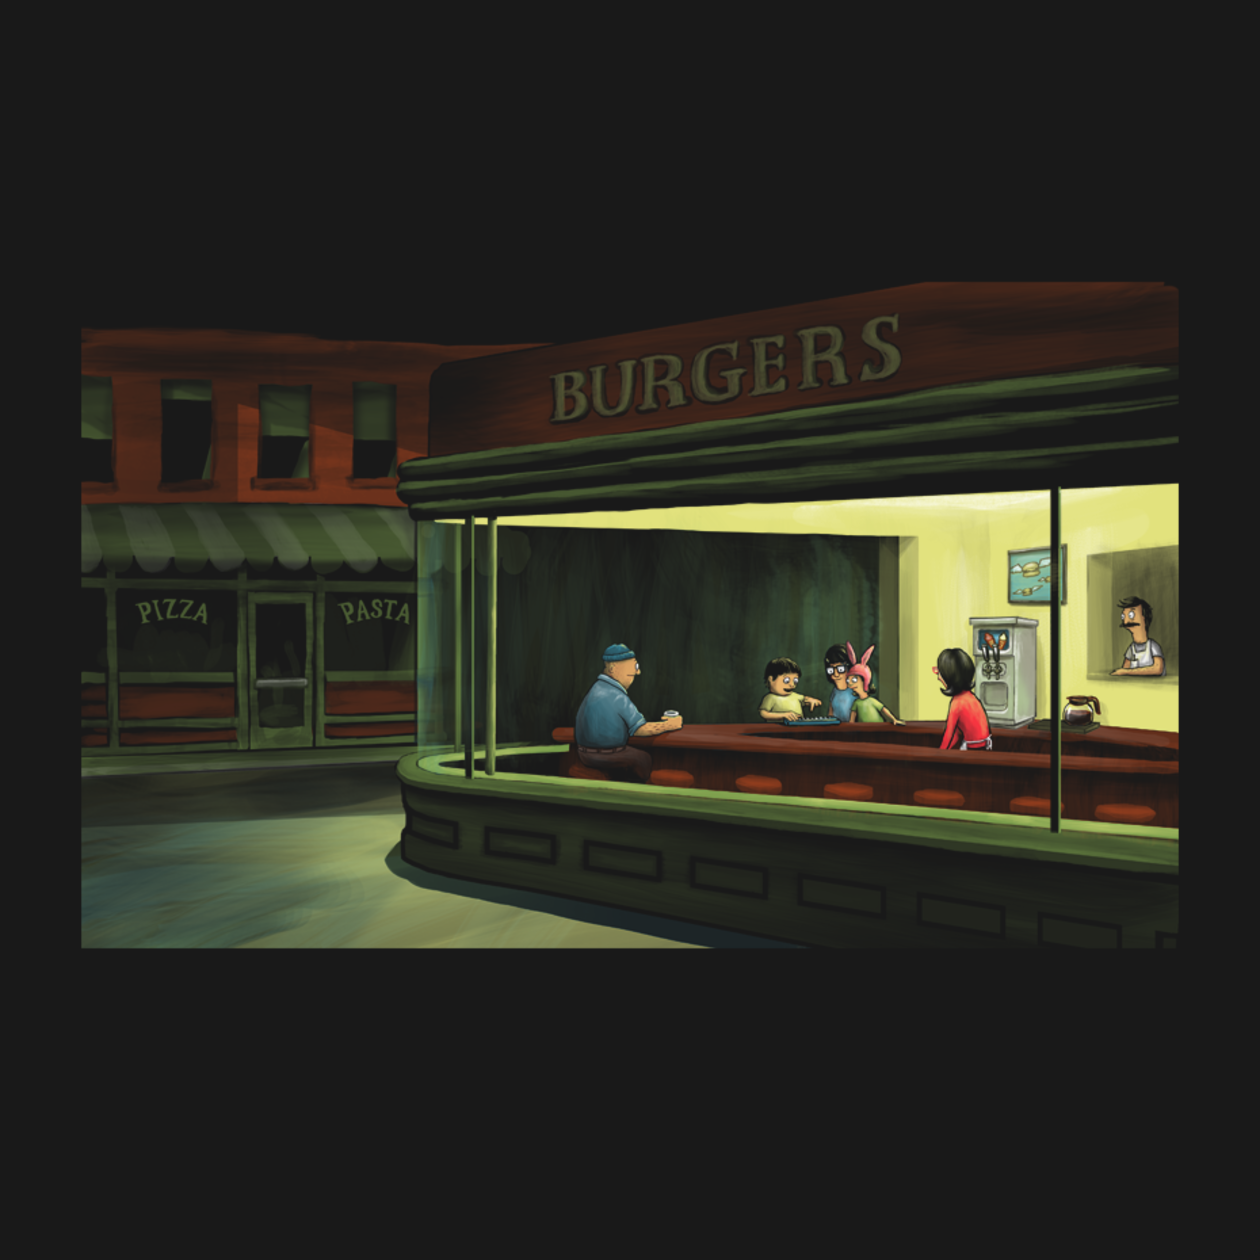 T shirts night burgers teepublic for Diner painting